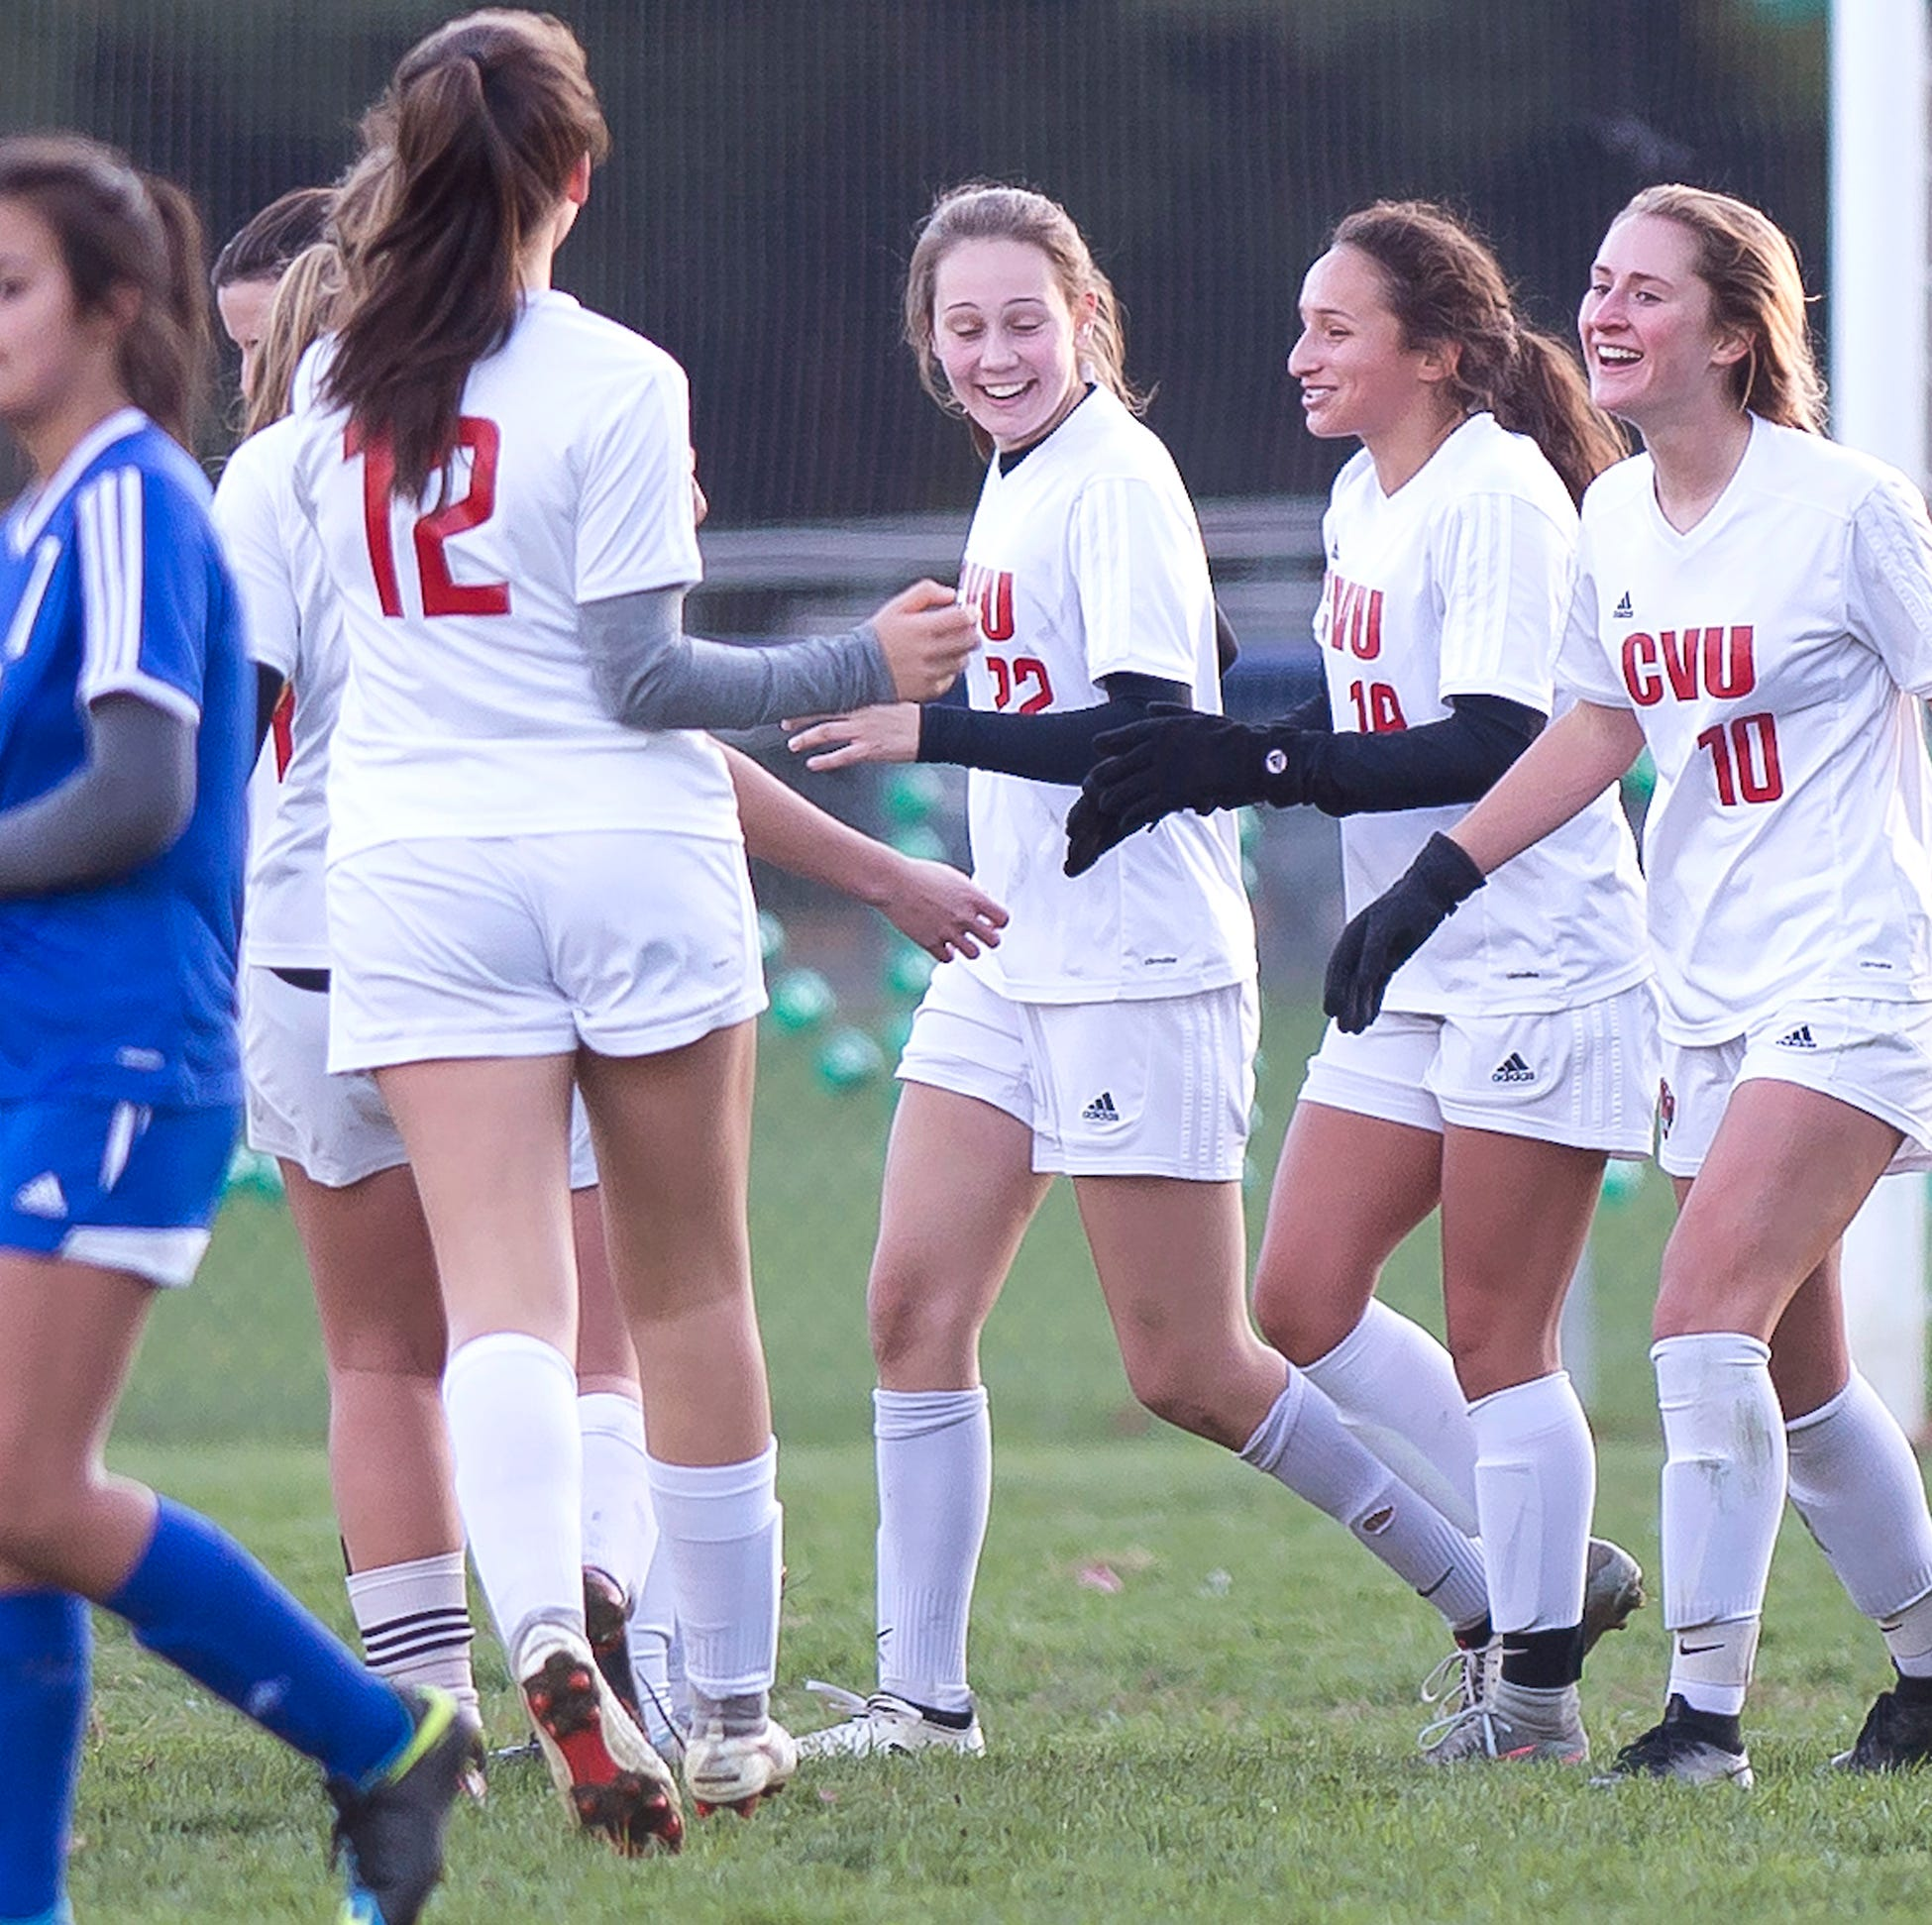 2018 Vermont high school girls soccer playoff primer and predictions